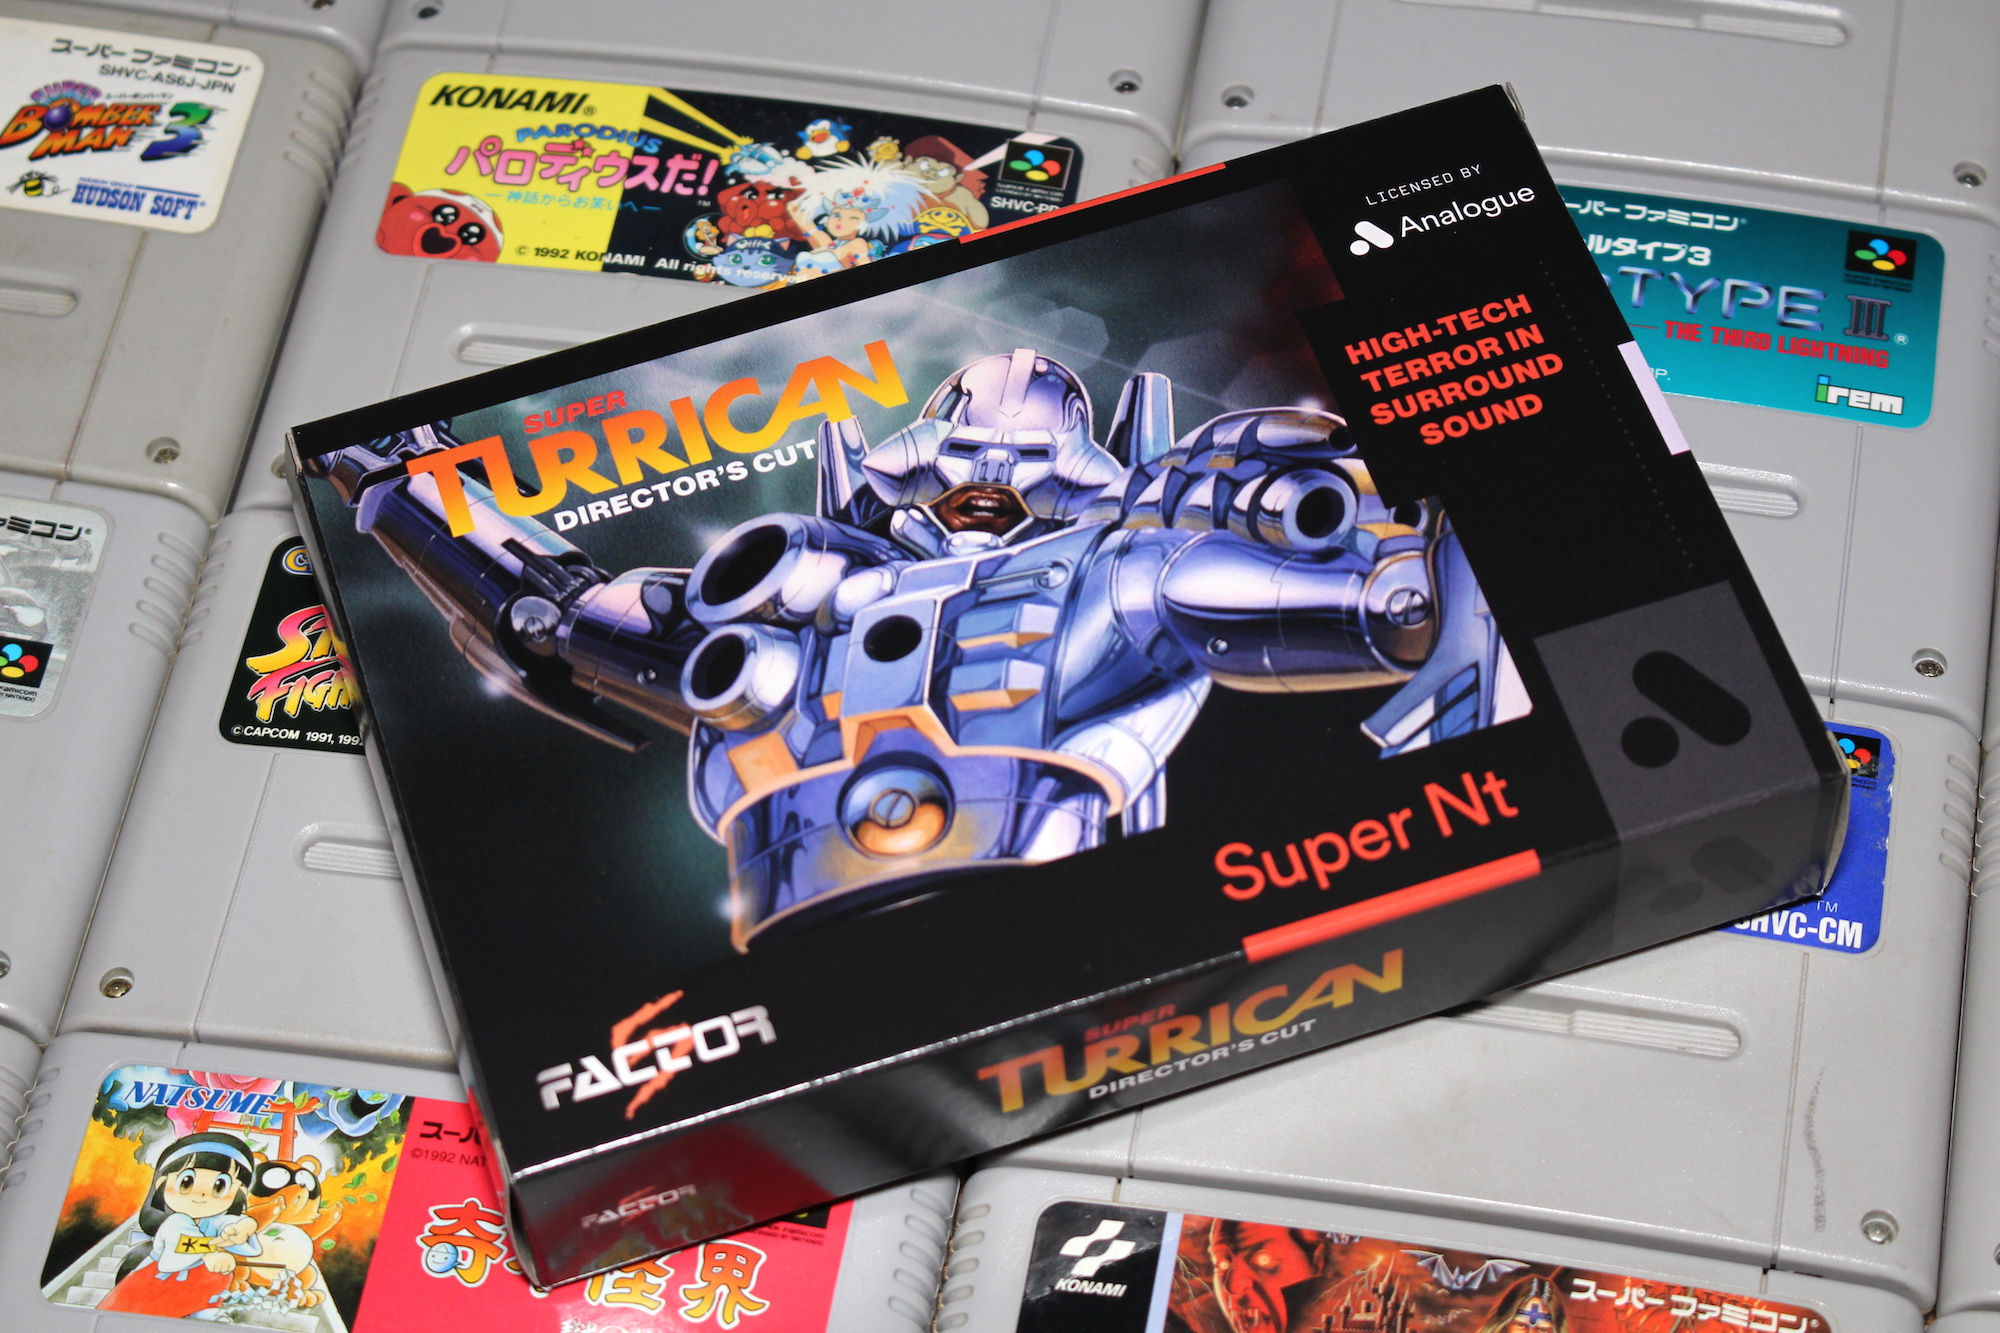 Hardware Review The Analogue Super Nt Is Ultimate Way To Play Knight Raizer Portable Ps2 3 Img 7480